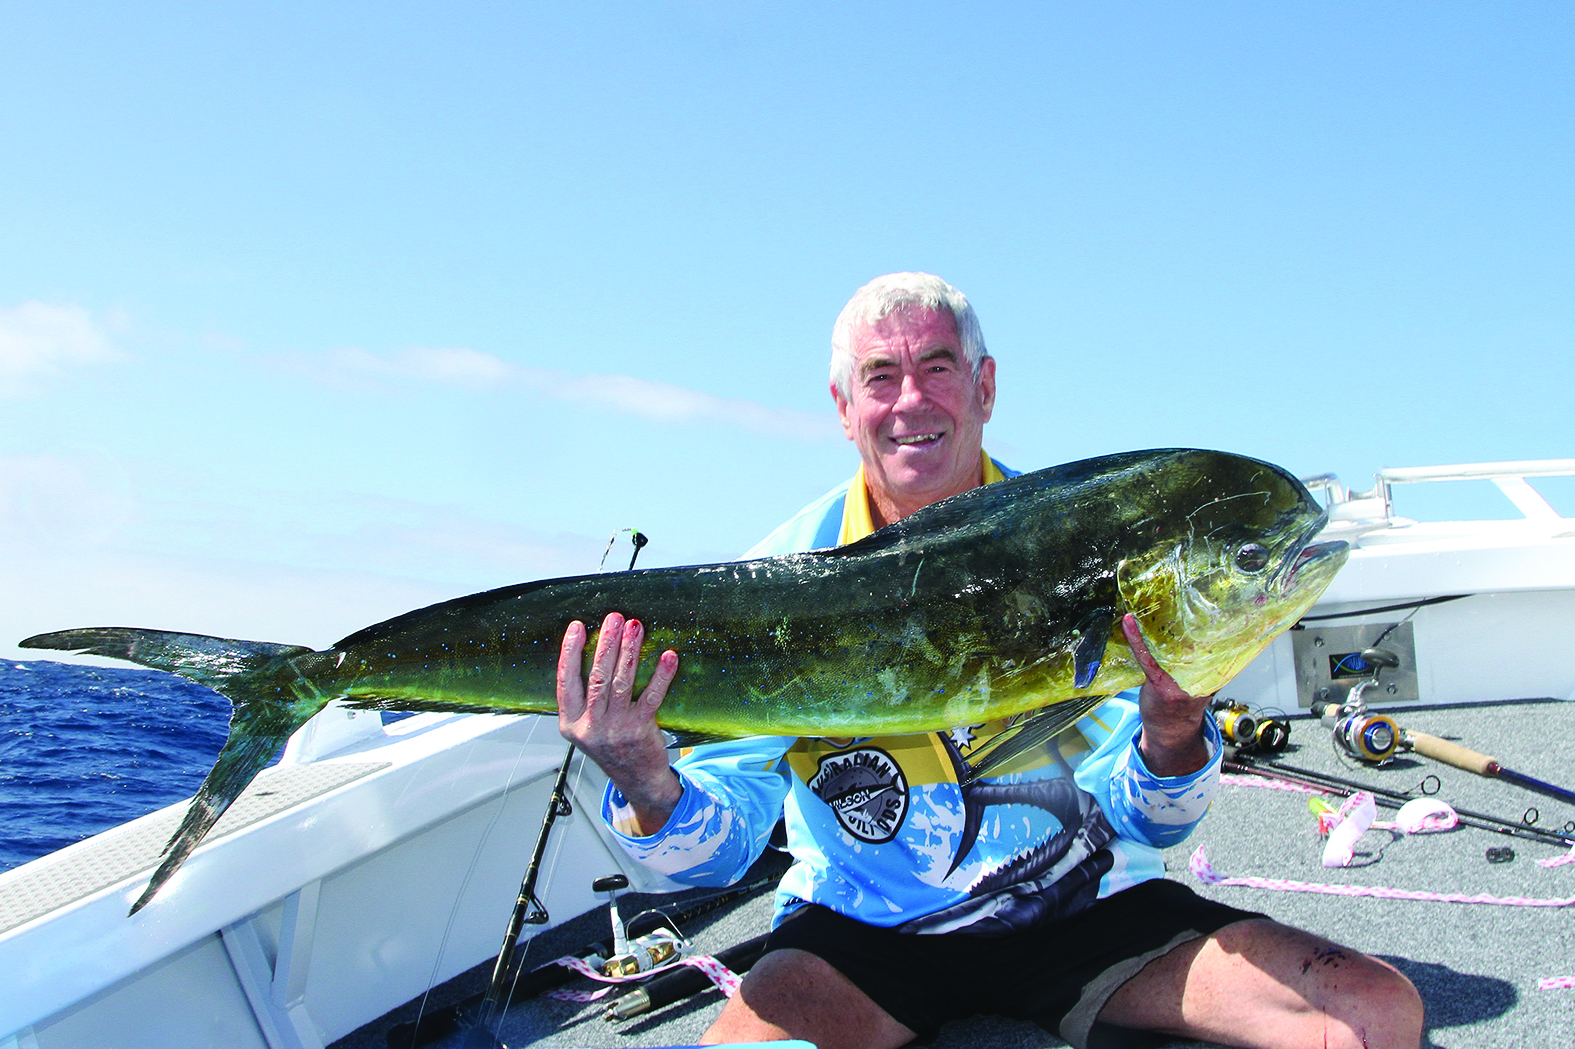 Ron Winnet with a dolphin fish caught in sloppy conditions.